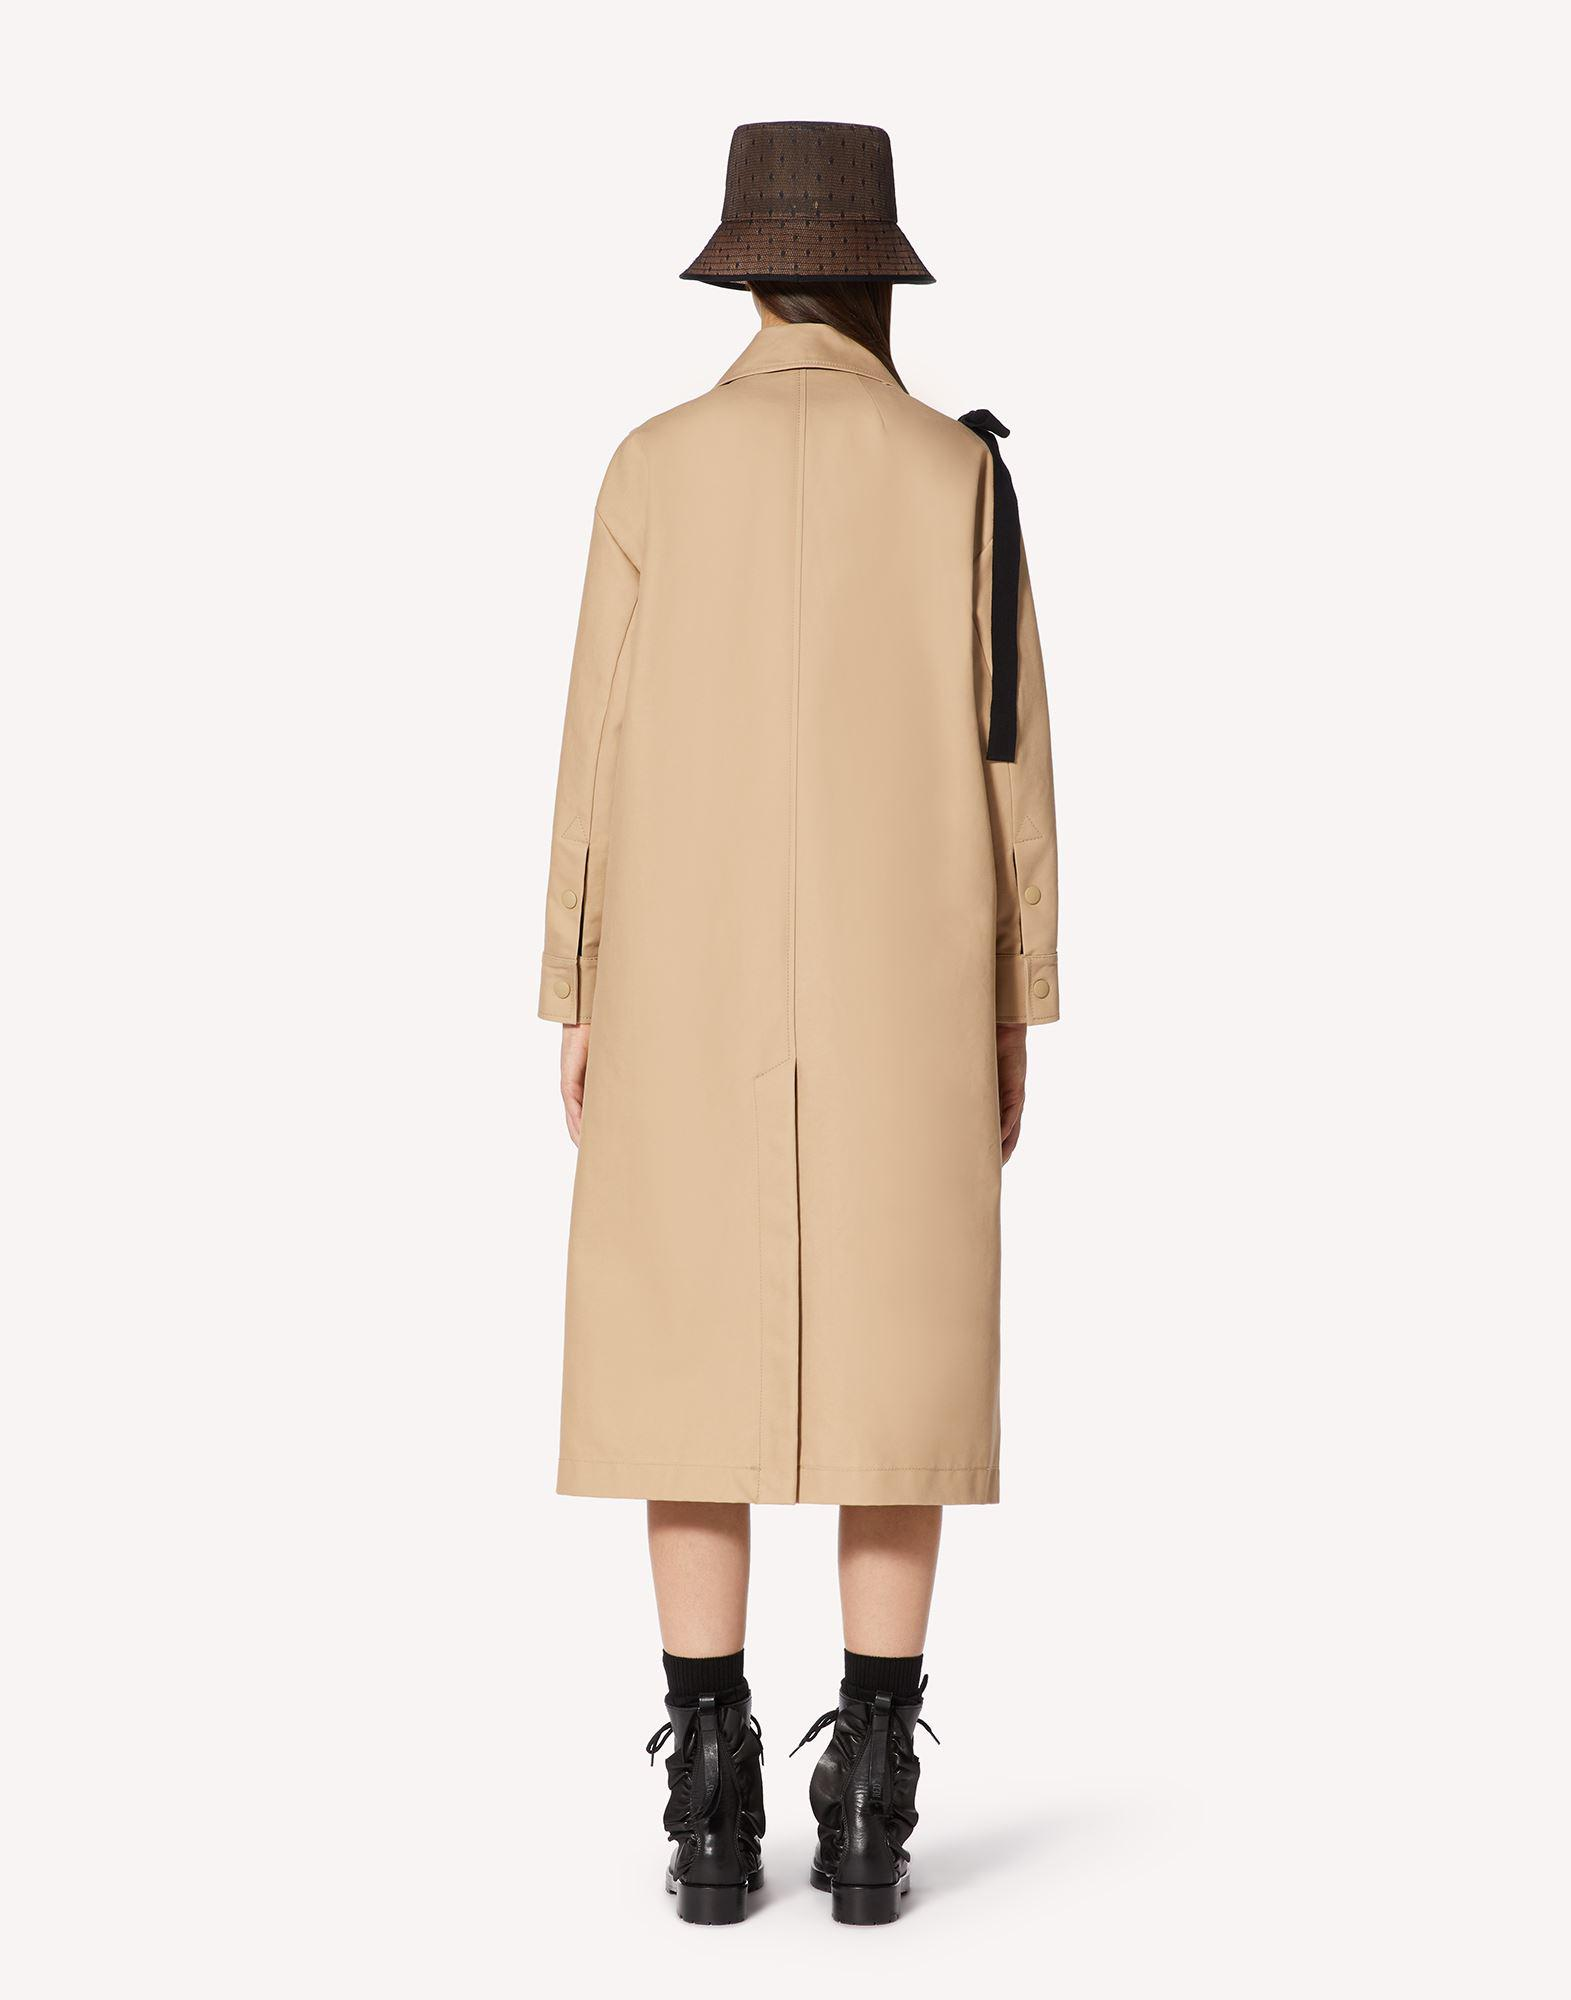 MAY LILY EMBROIDERED TRENCH COAT WITH BOW DETAIL 1